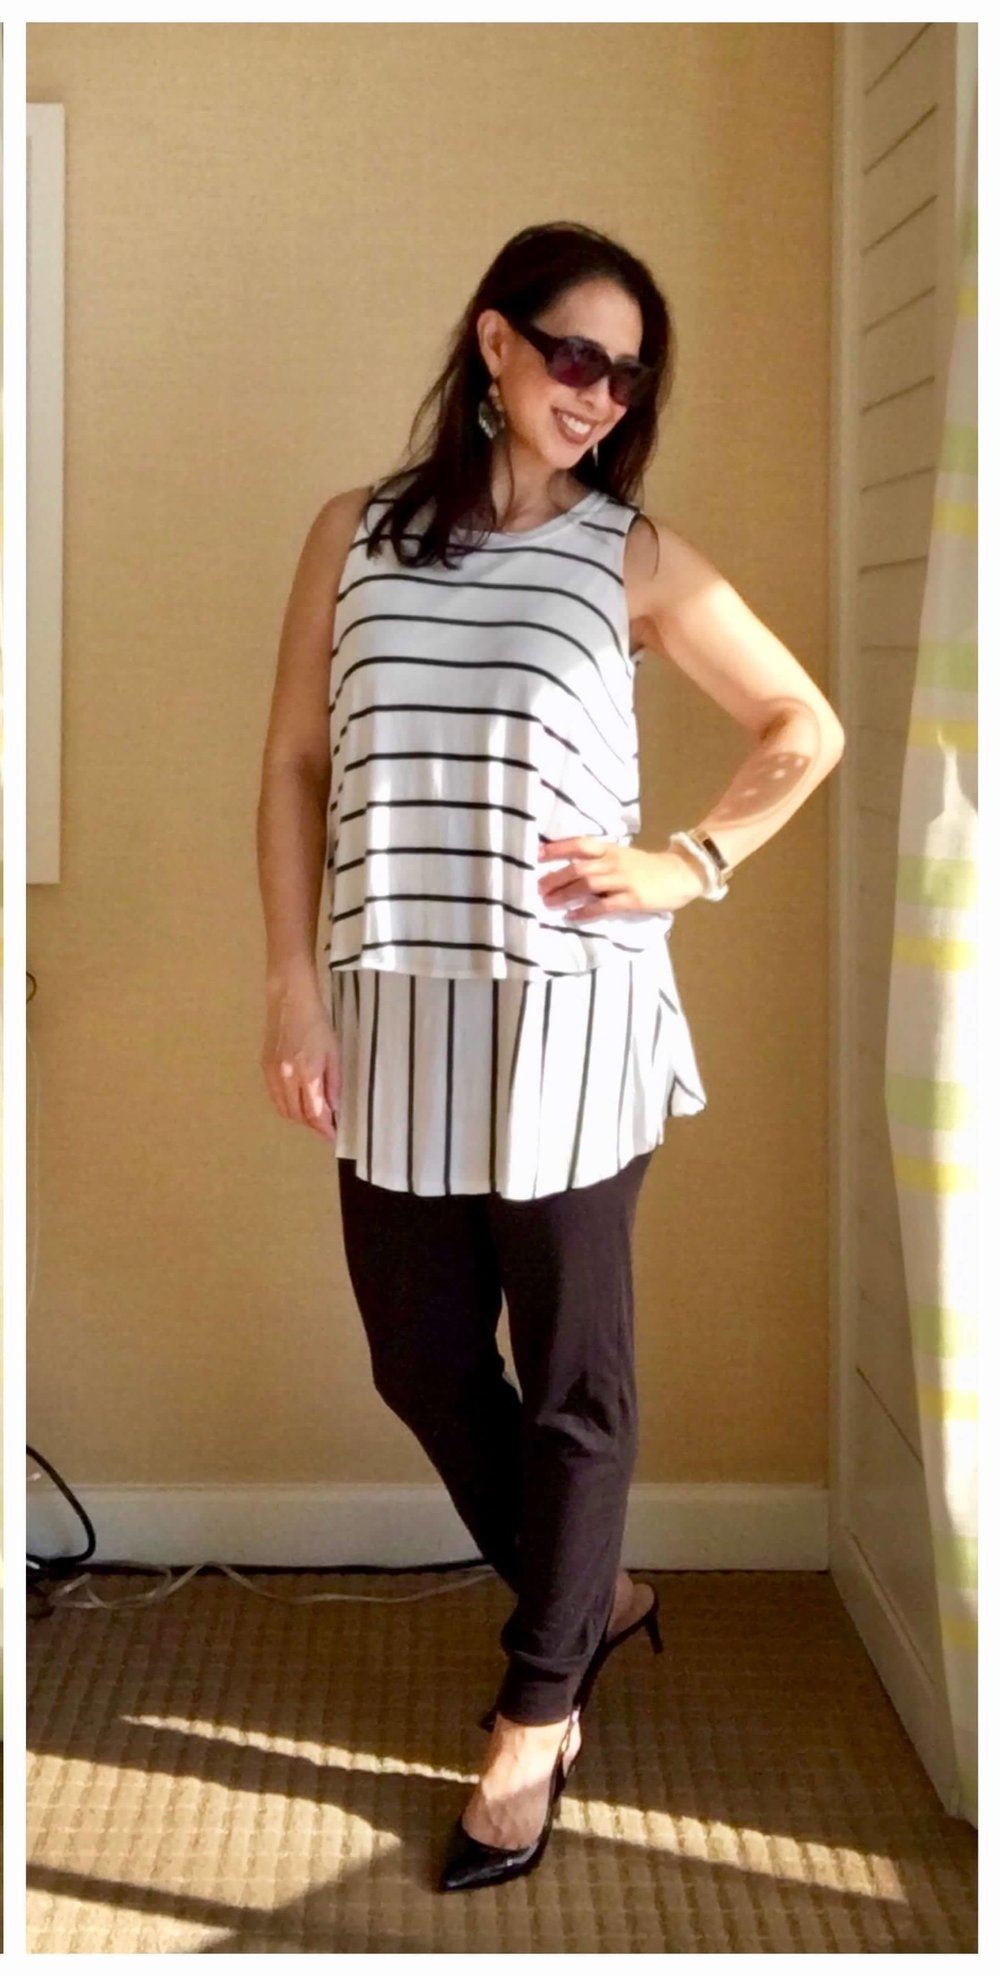 Credit: Rochelle in  Frumpy Fighters   Joggers + Dressy Top + Pumps + Statement Earrings  Check out Rochelle's website  here !